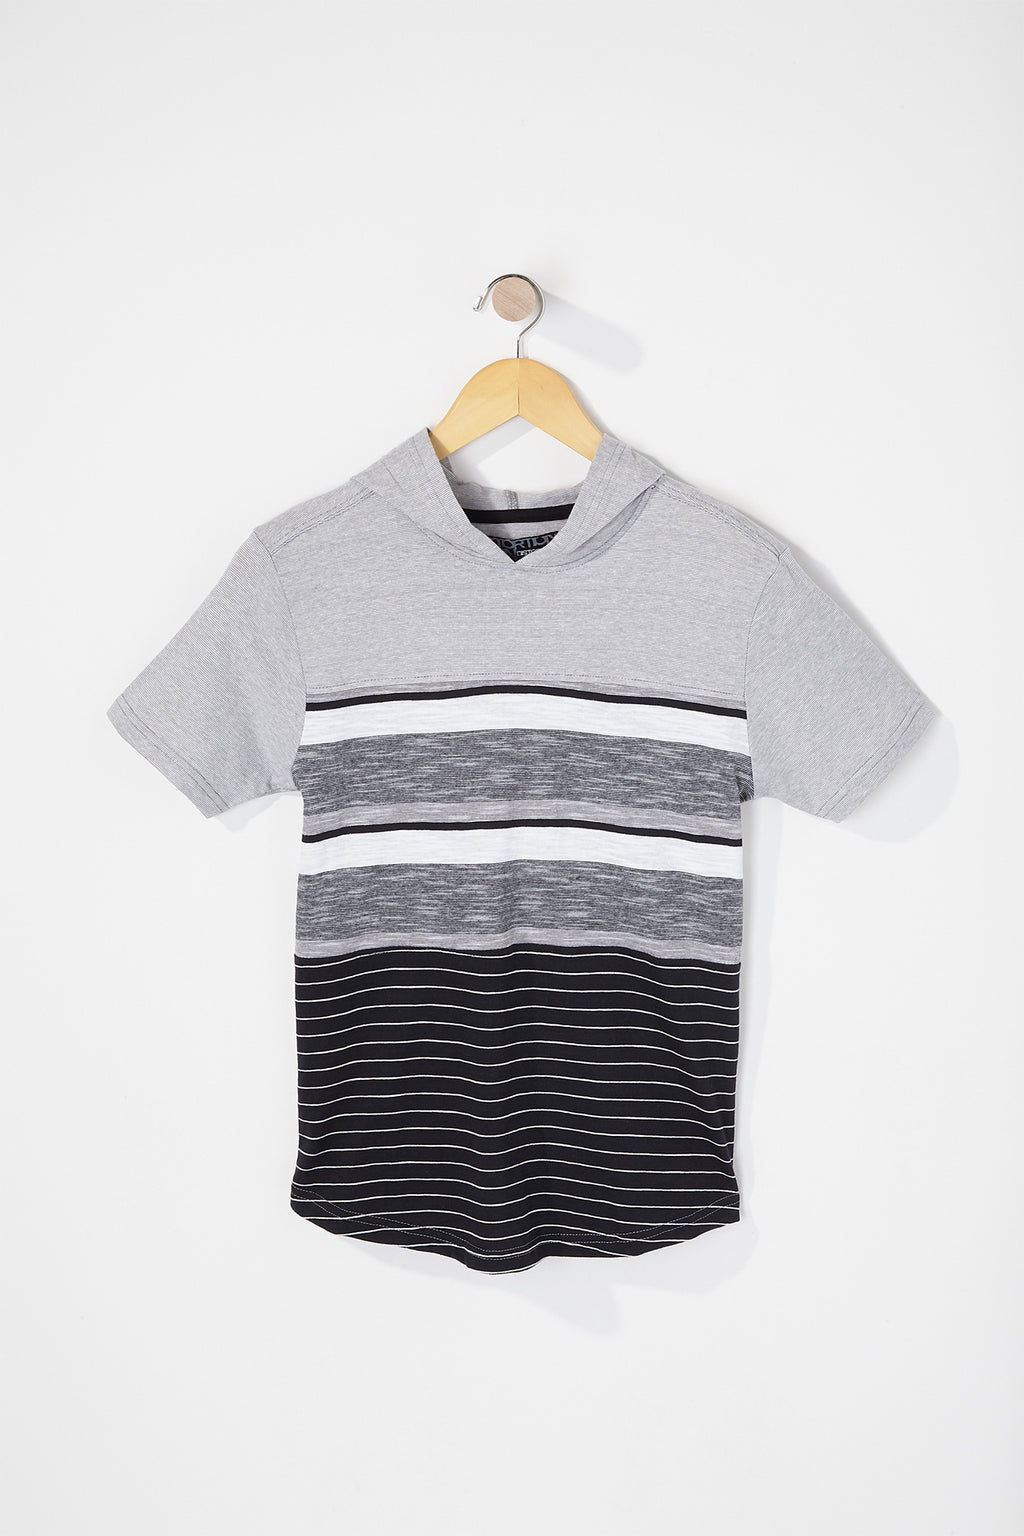 West49 Boys Hooded Striped T-Shirt